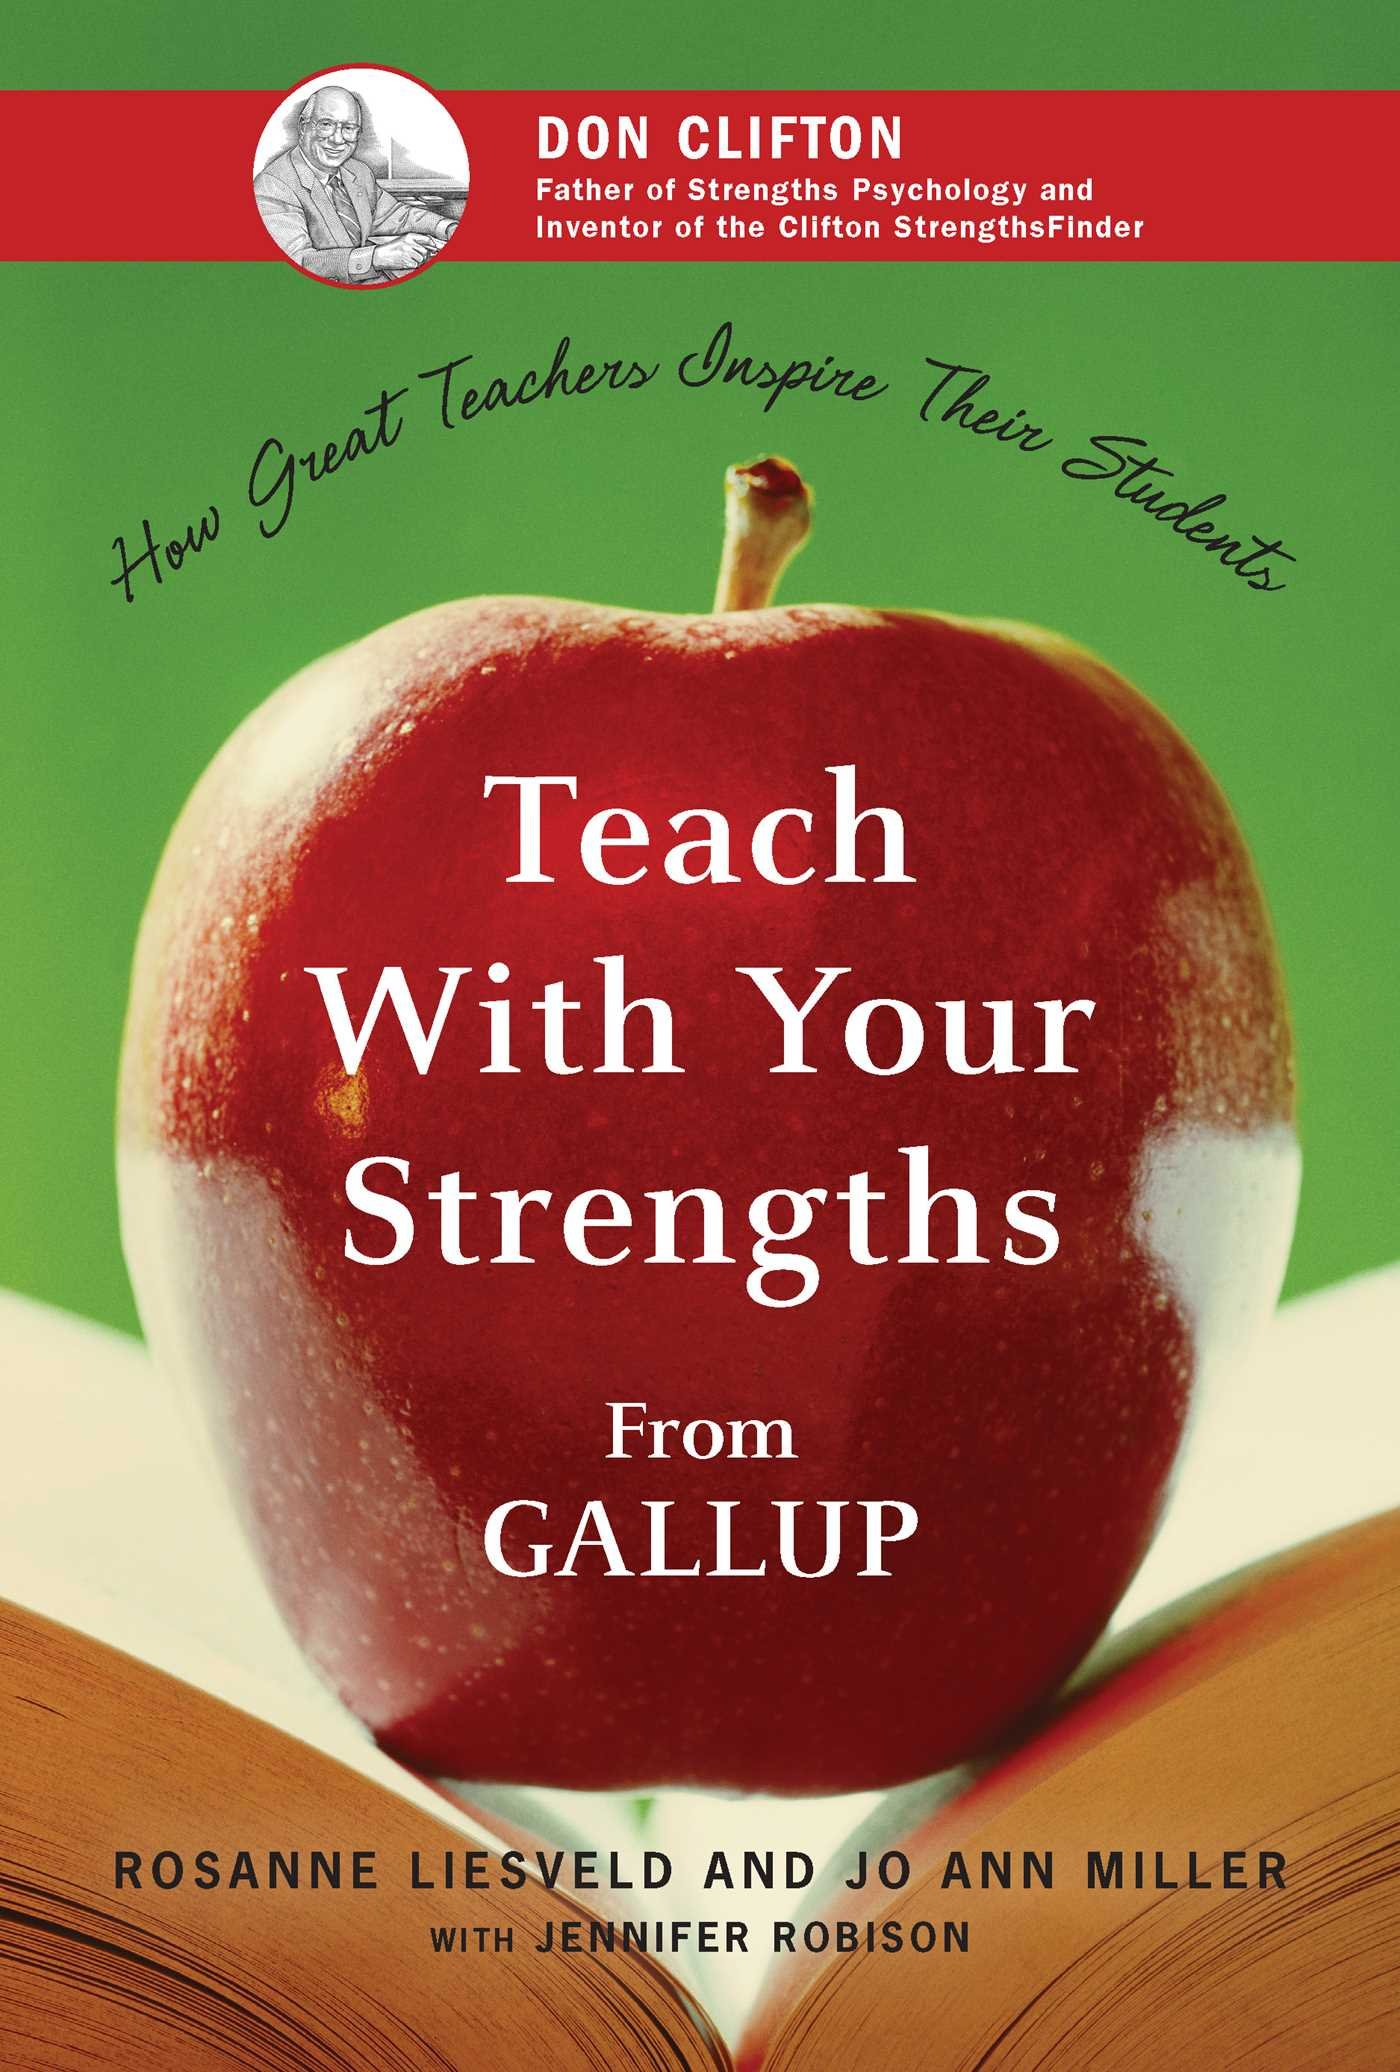 teach your strengths how great teachers inspire their teach your strengths how great teachers inspire their students rosanne liesveld joann miller jennifer robison 9781595620064 amazon com books